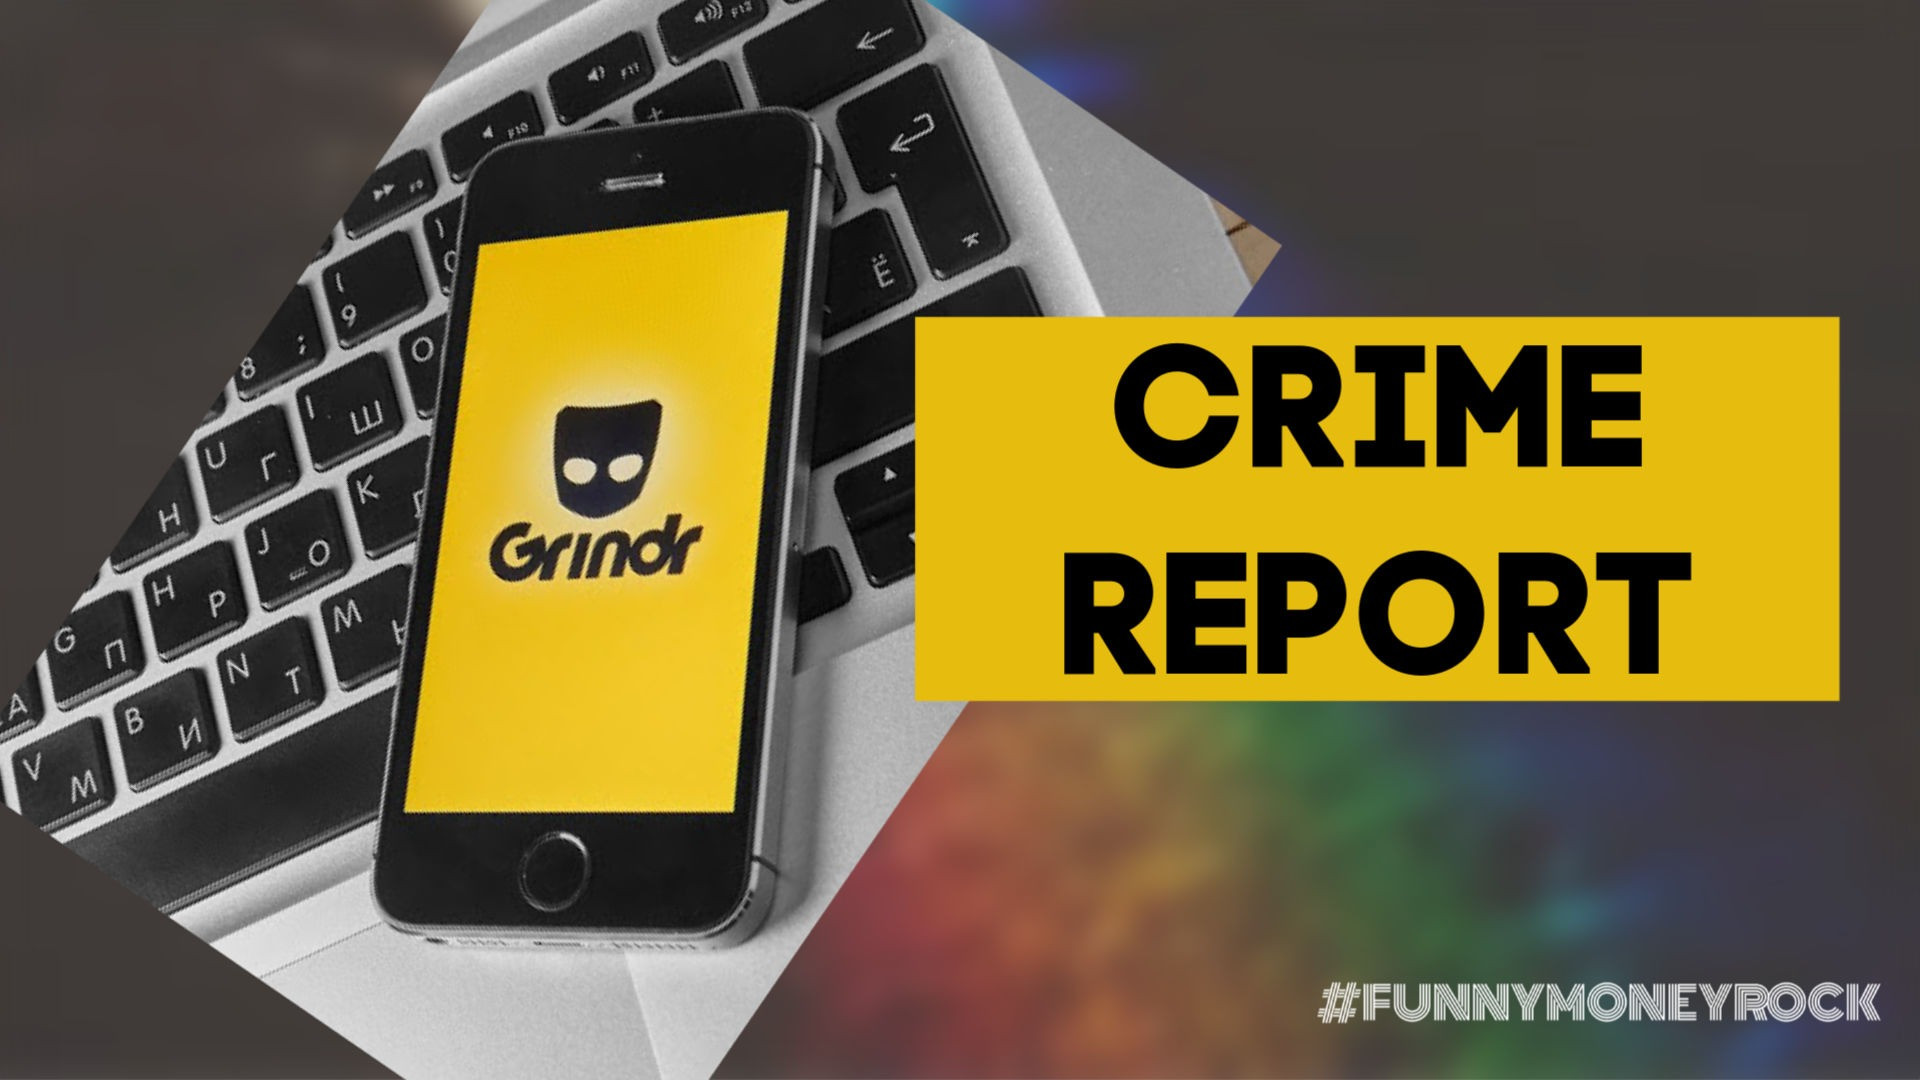 Gay Man Robbed In Hotel By Grindr Date